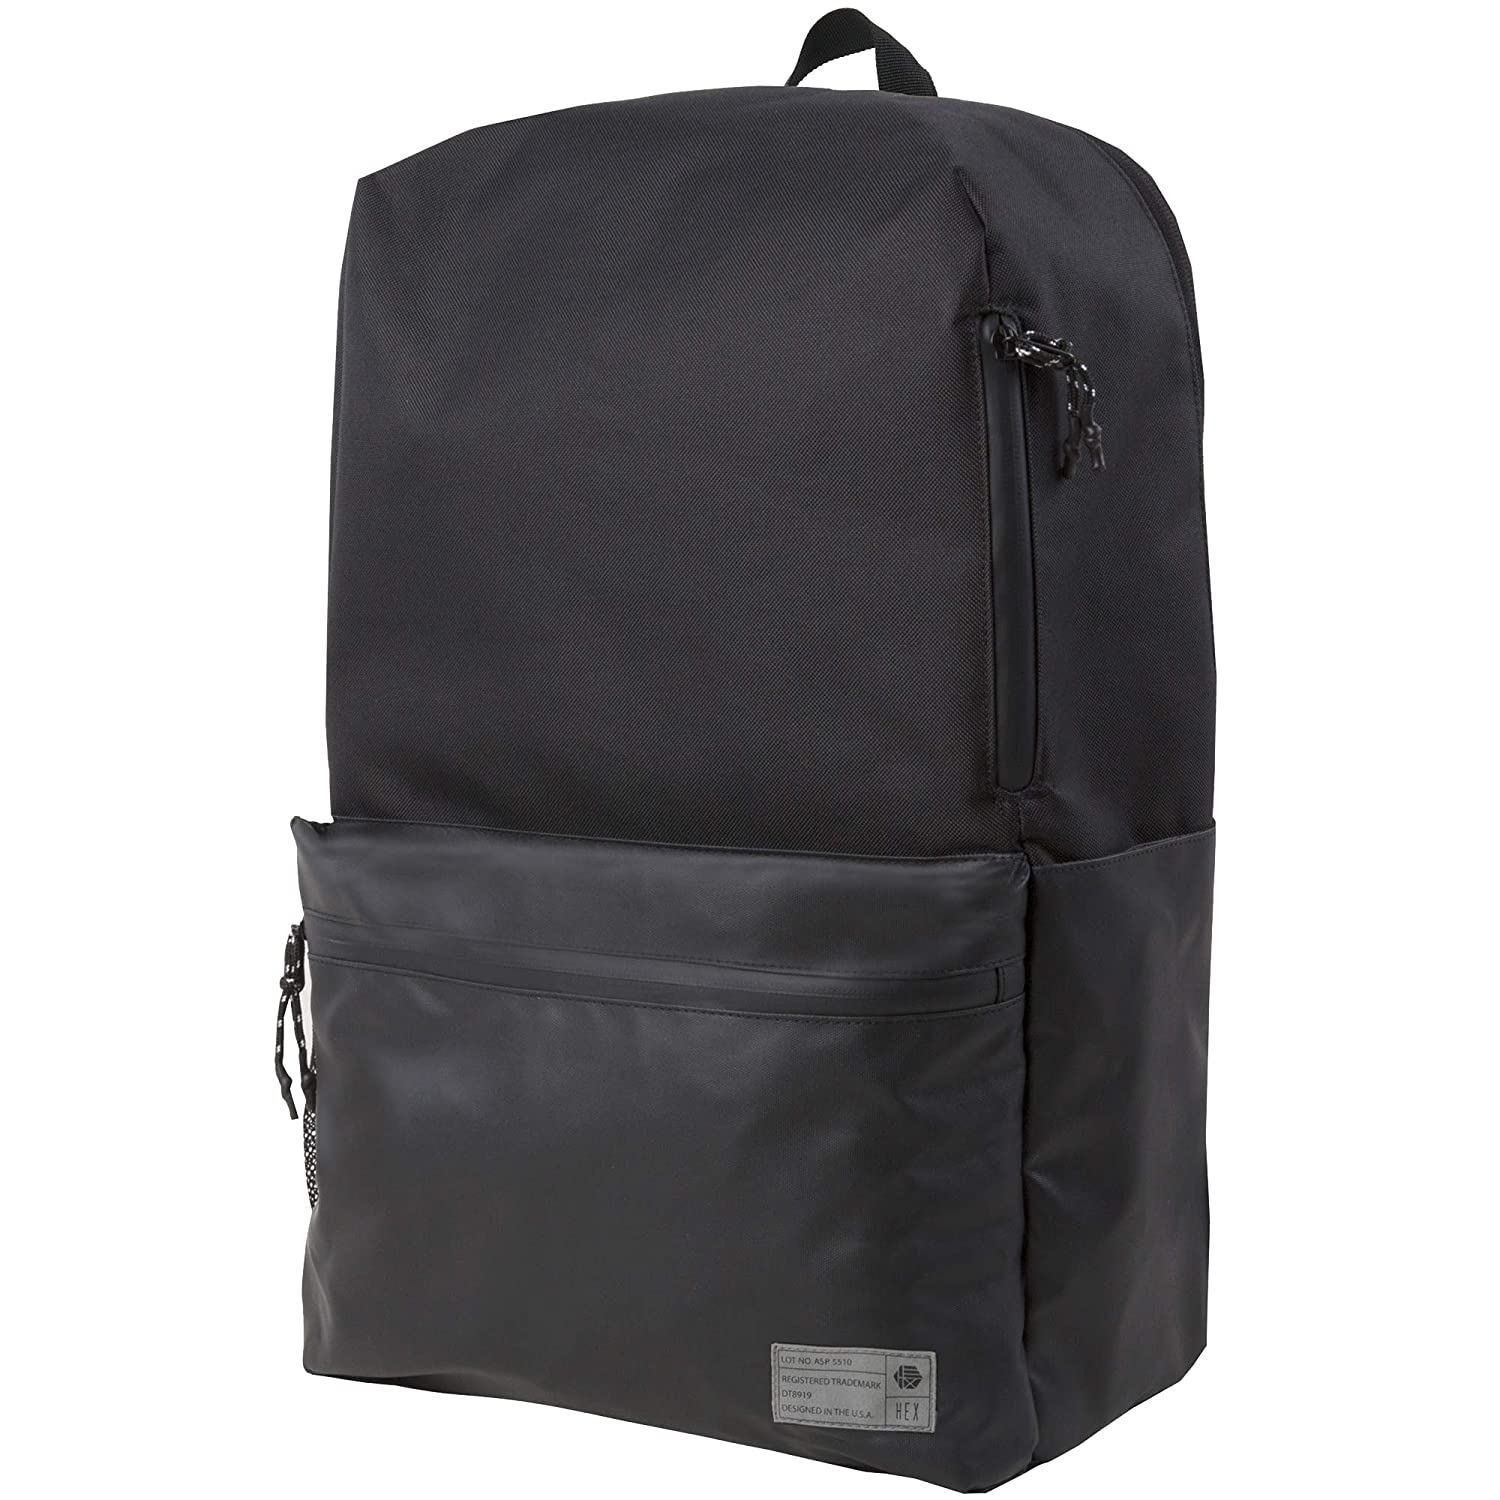 488f77b25f6a Amazon.com: HEX Aspect 25L Sneaker Backpack, Black (BLK/MTLCBK), One ...